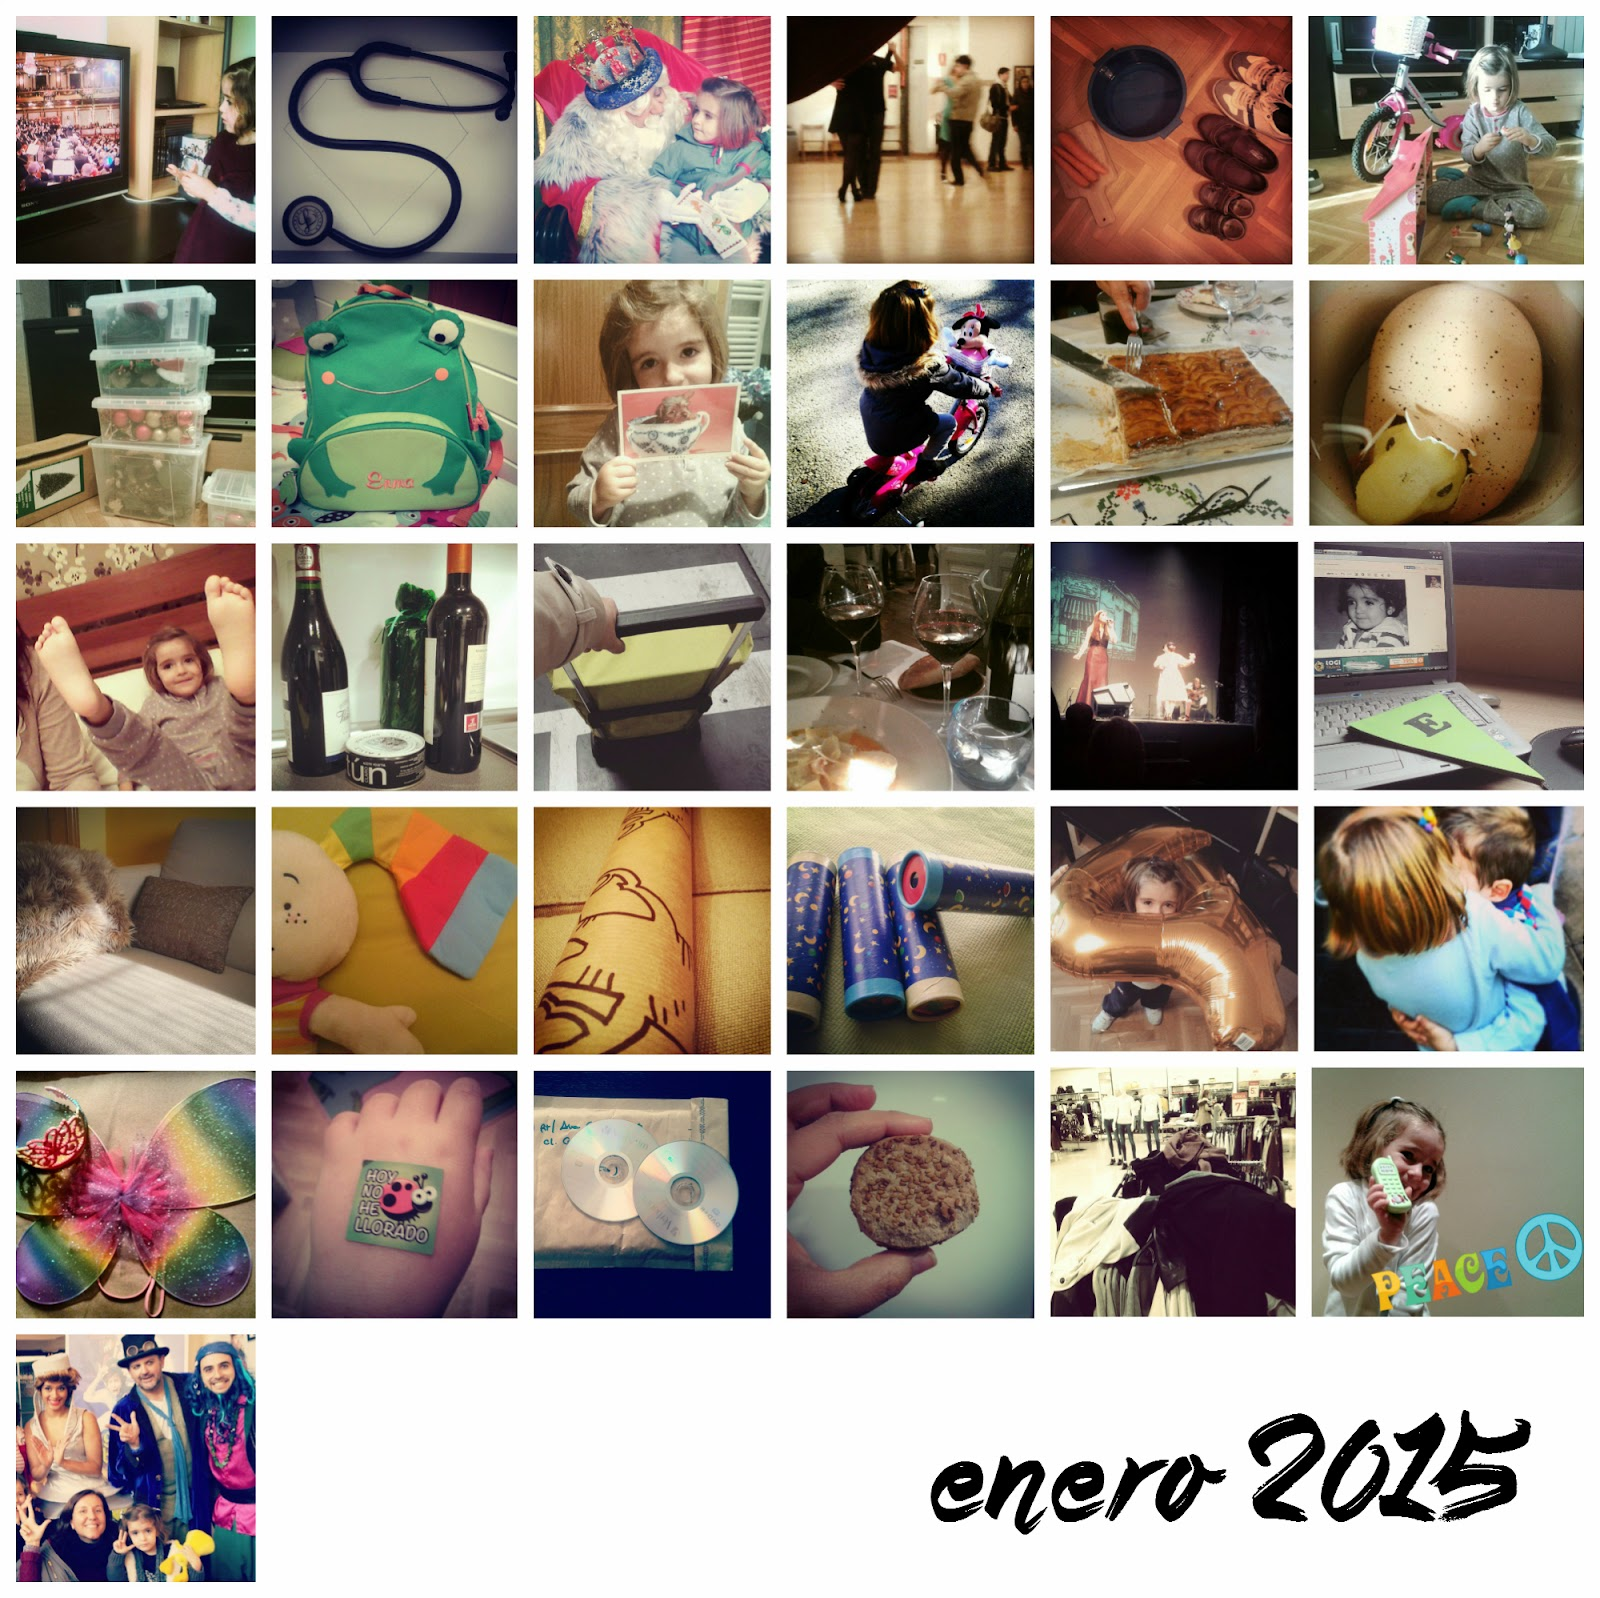 Enero 2015 en fotos #365sd #365pd3